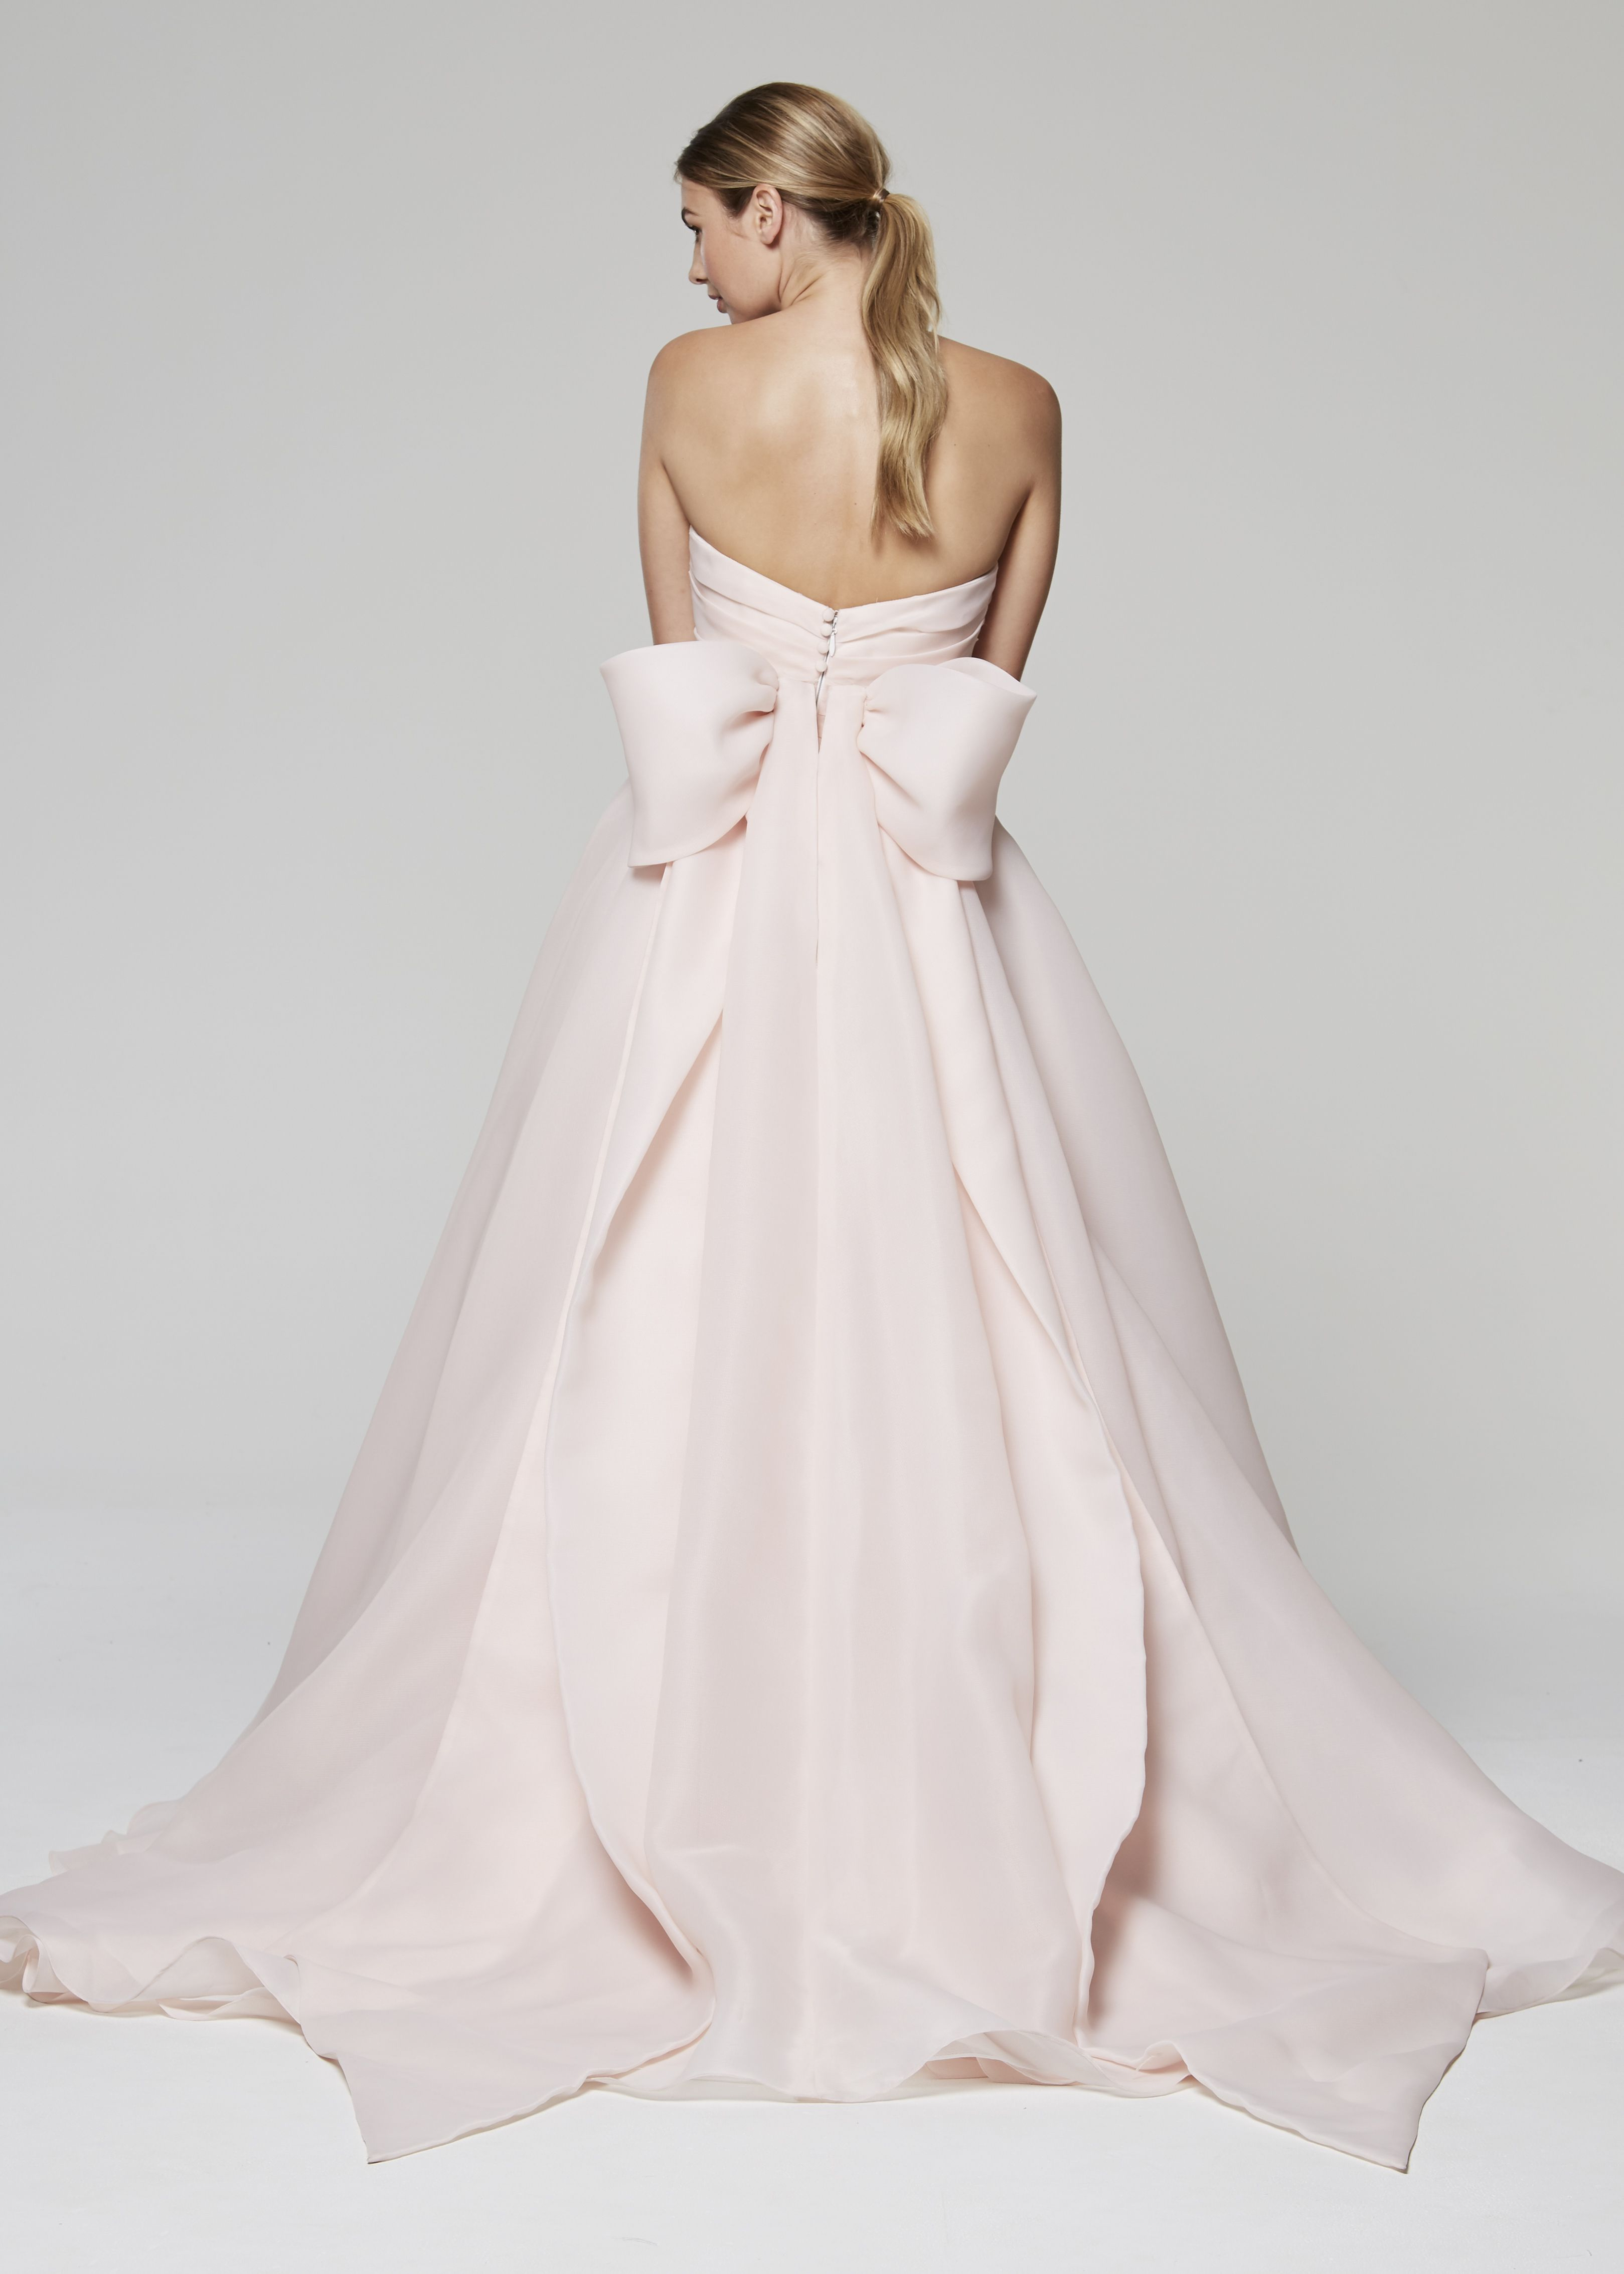 Abigail Blue Willow Bride By Anne Barge Fall 2018 Blush Pink Wedding Gown With Sweetheart Draped Bodice Of Gazar Full Circle Skirt Accented: Wedding Dresses With Pink Blue Accents At Websimilar.org